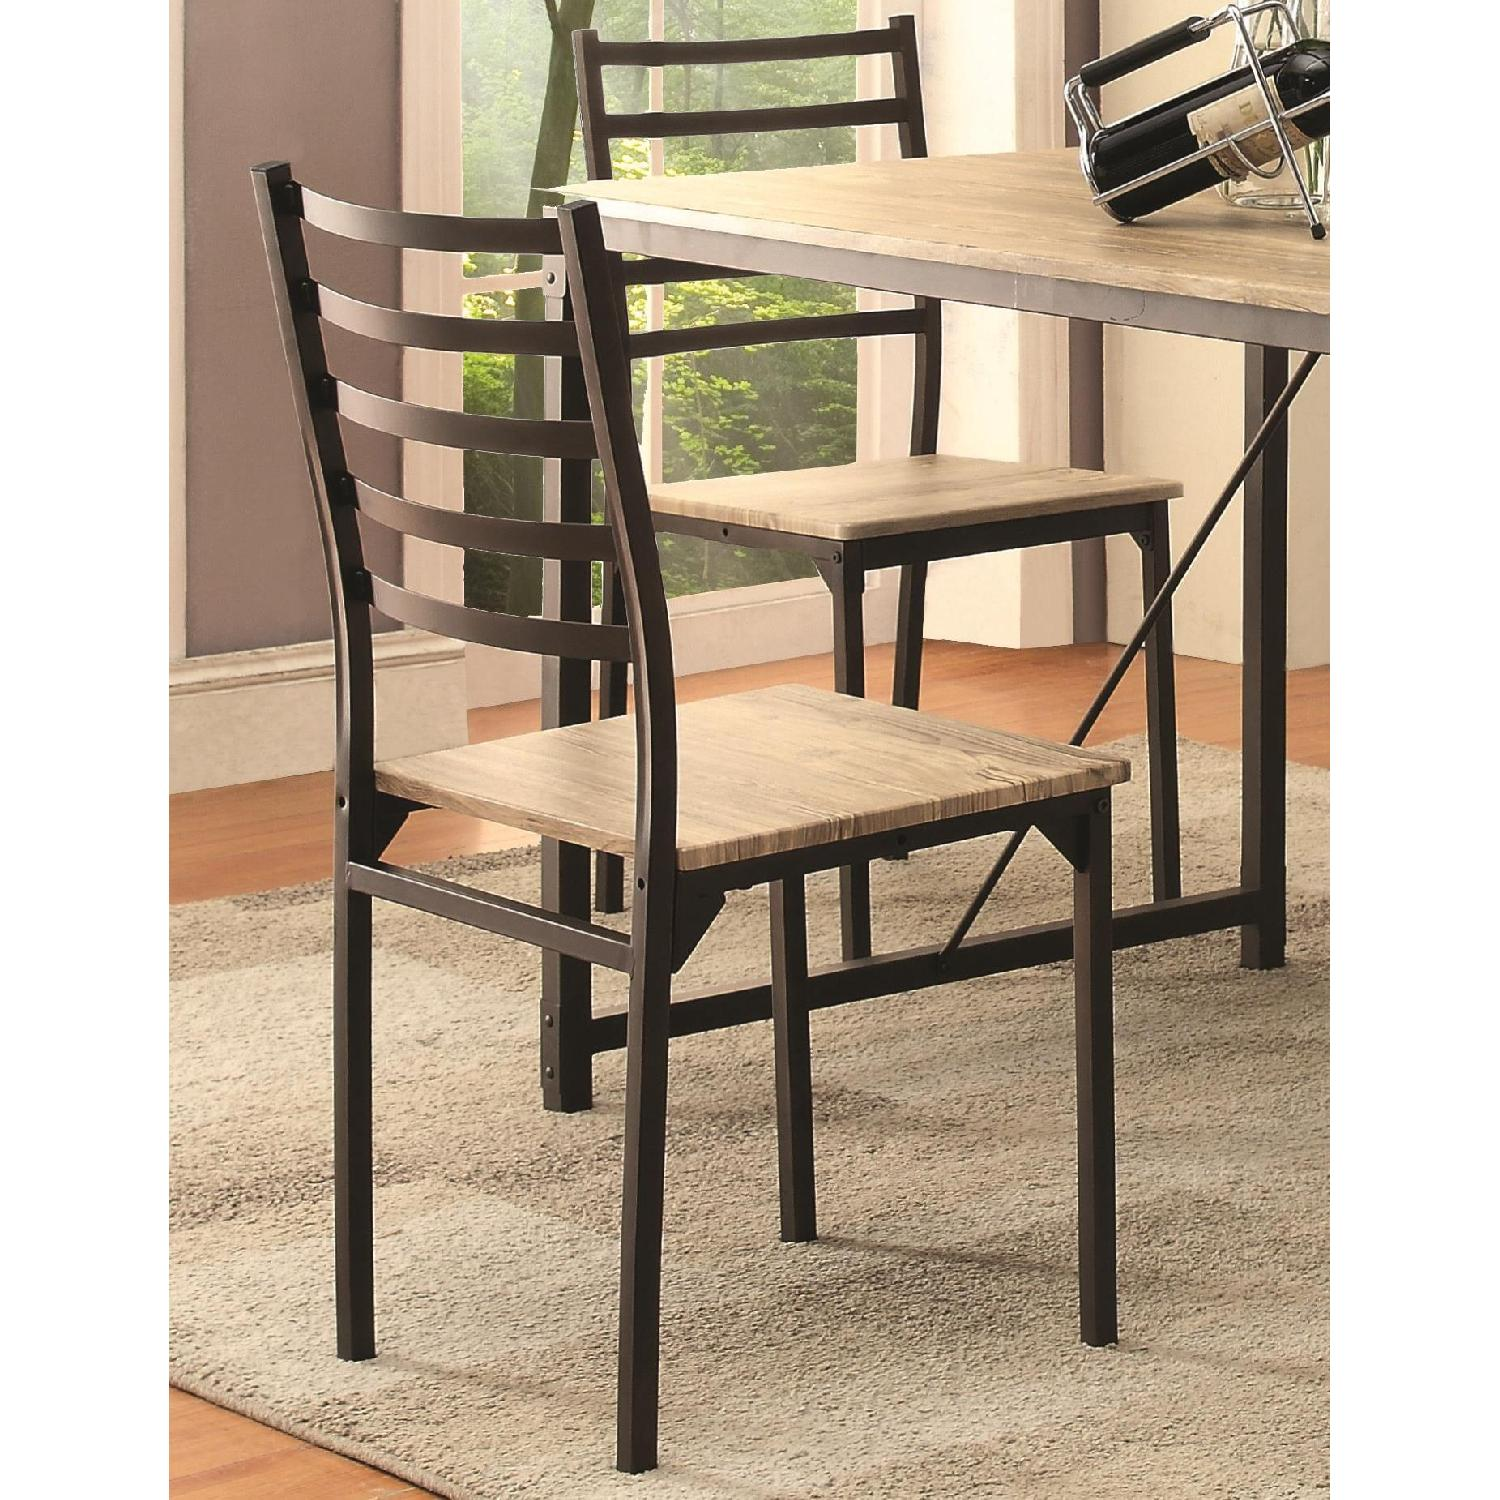 Industrial Design Inspired 5 Piece Rustic Dining Set - image-3